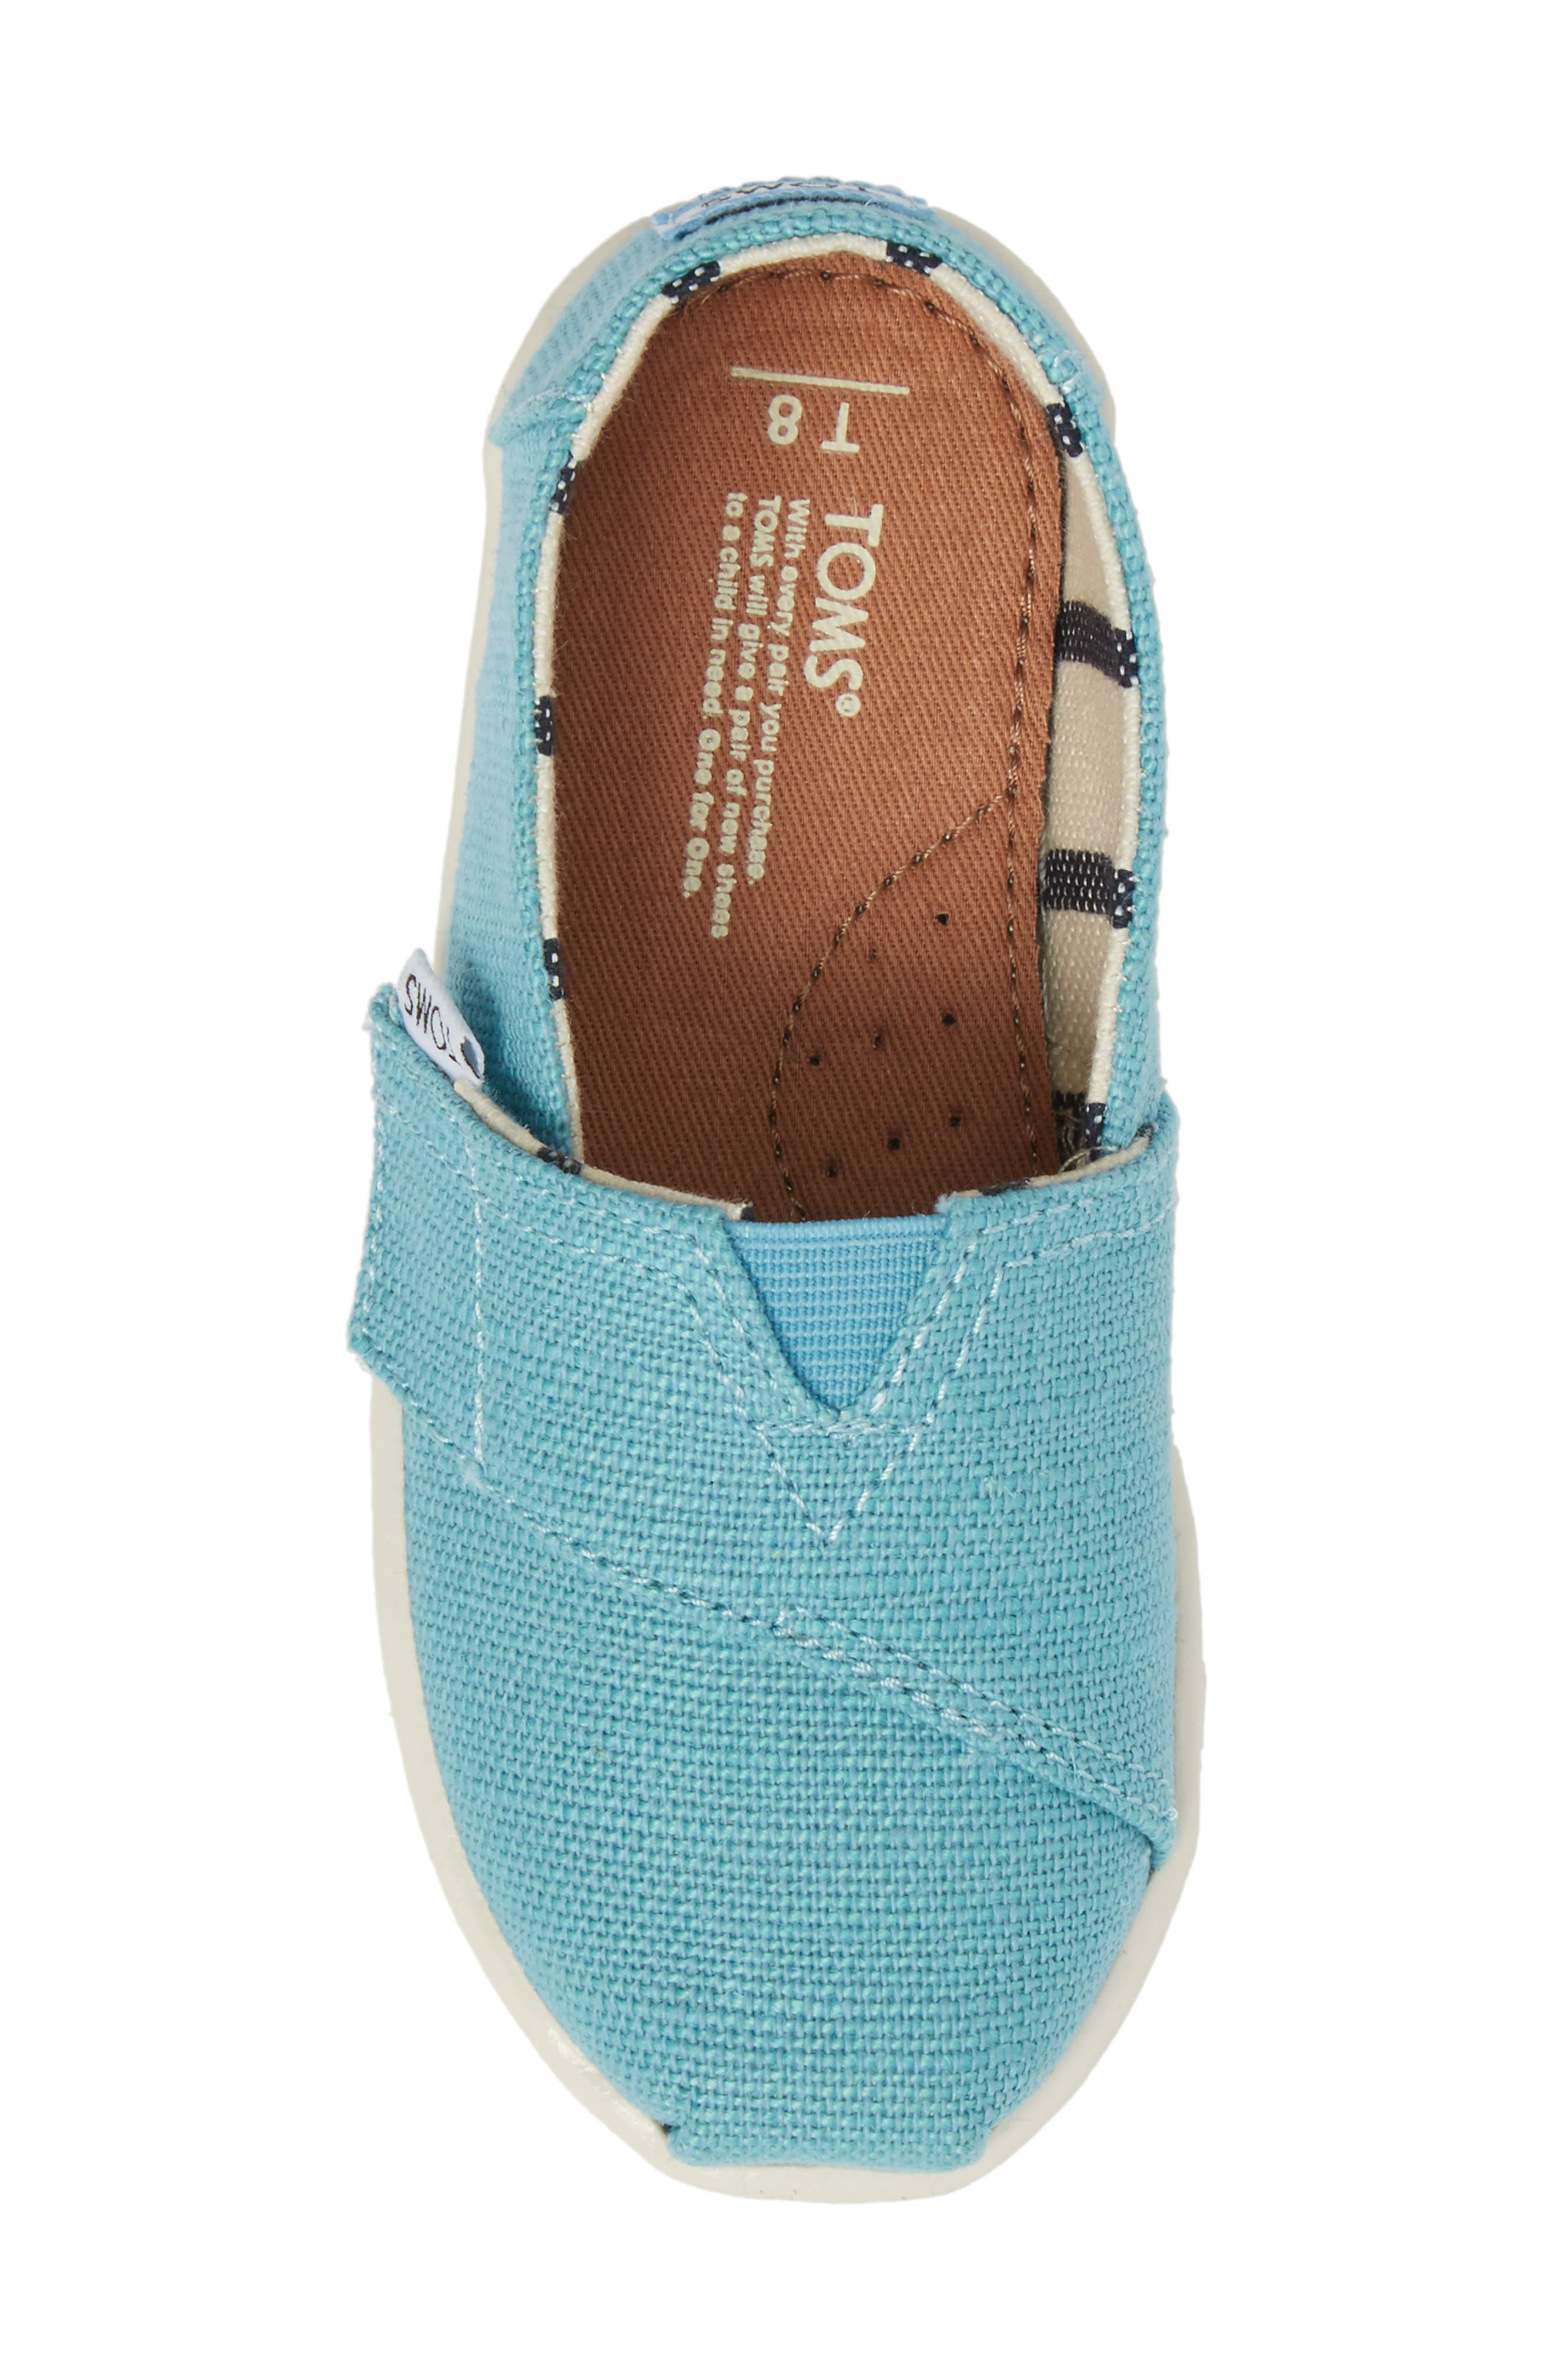 TOMS,                             Heritage Canvas Slip-On,                             Alternate thumbnail 5, color,                             430